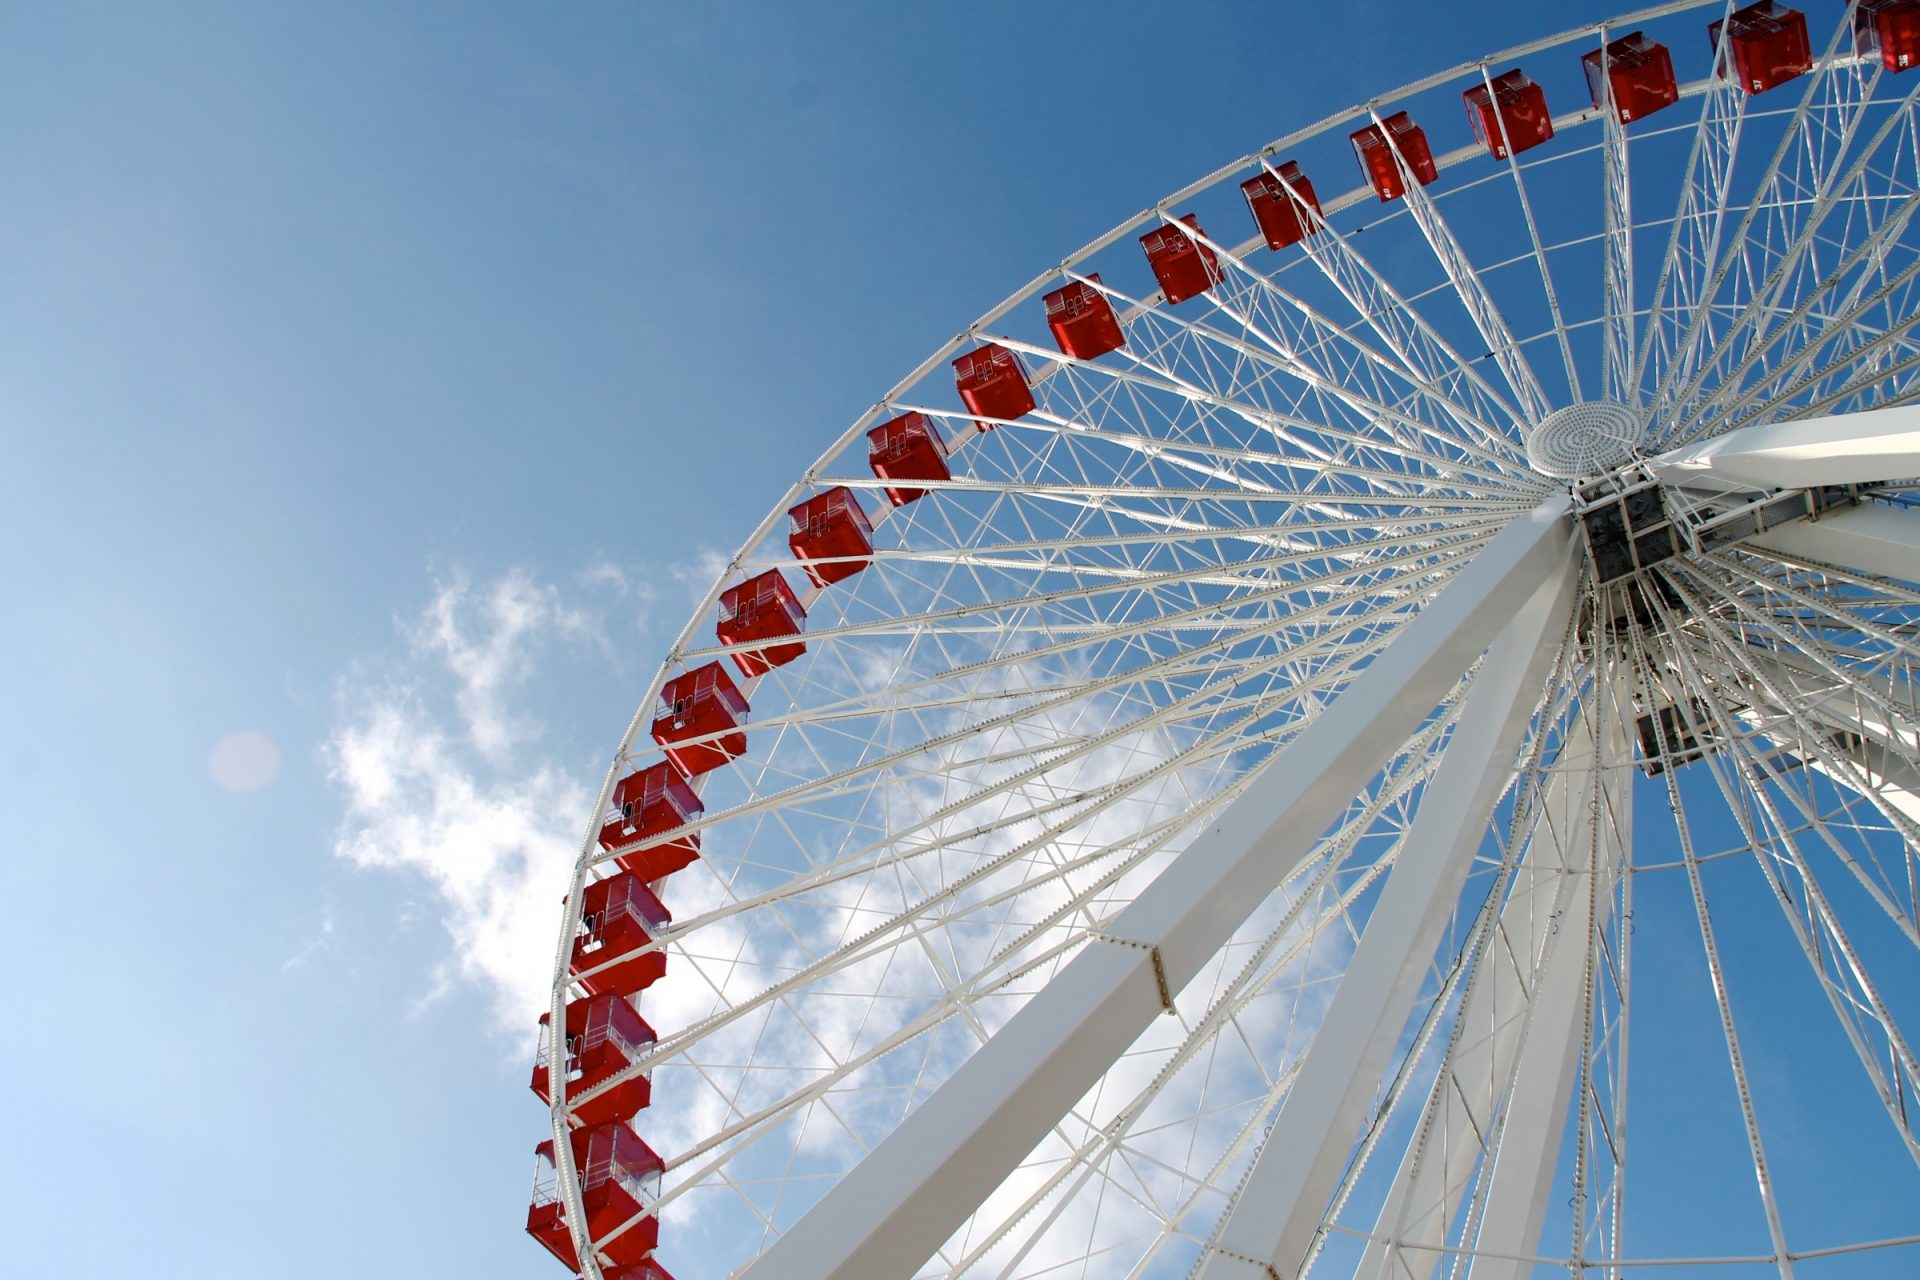 White & Red Ferris Wheel in Blue Sky